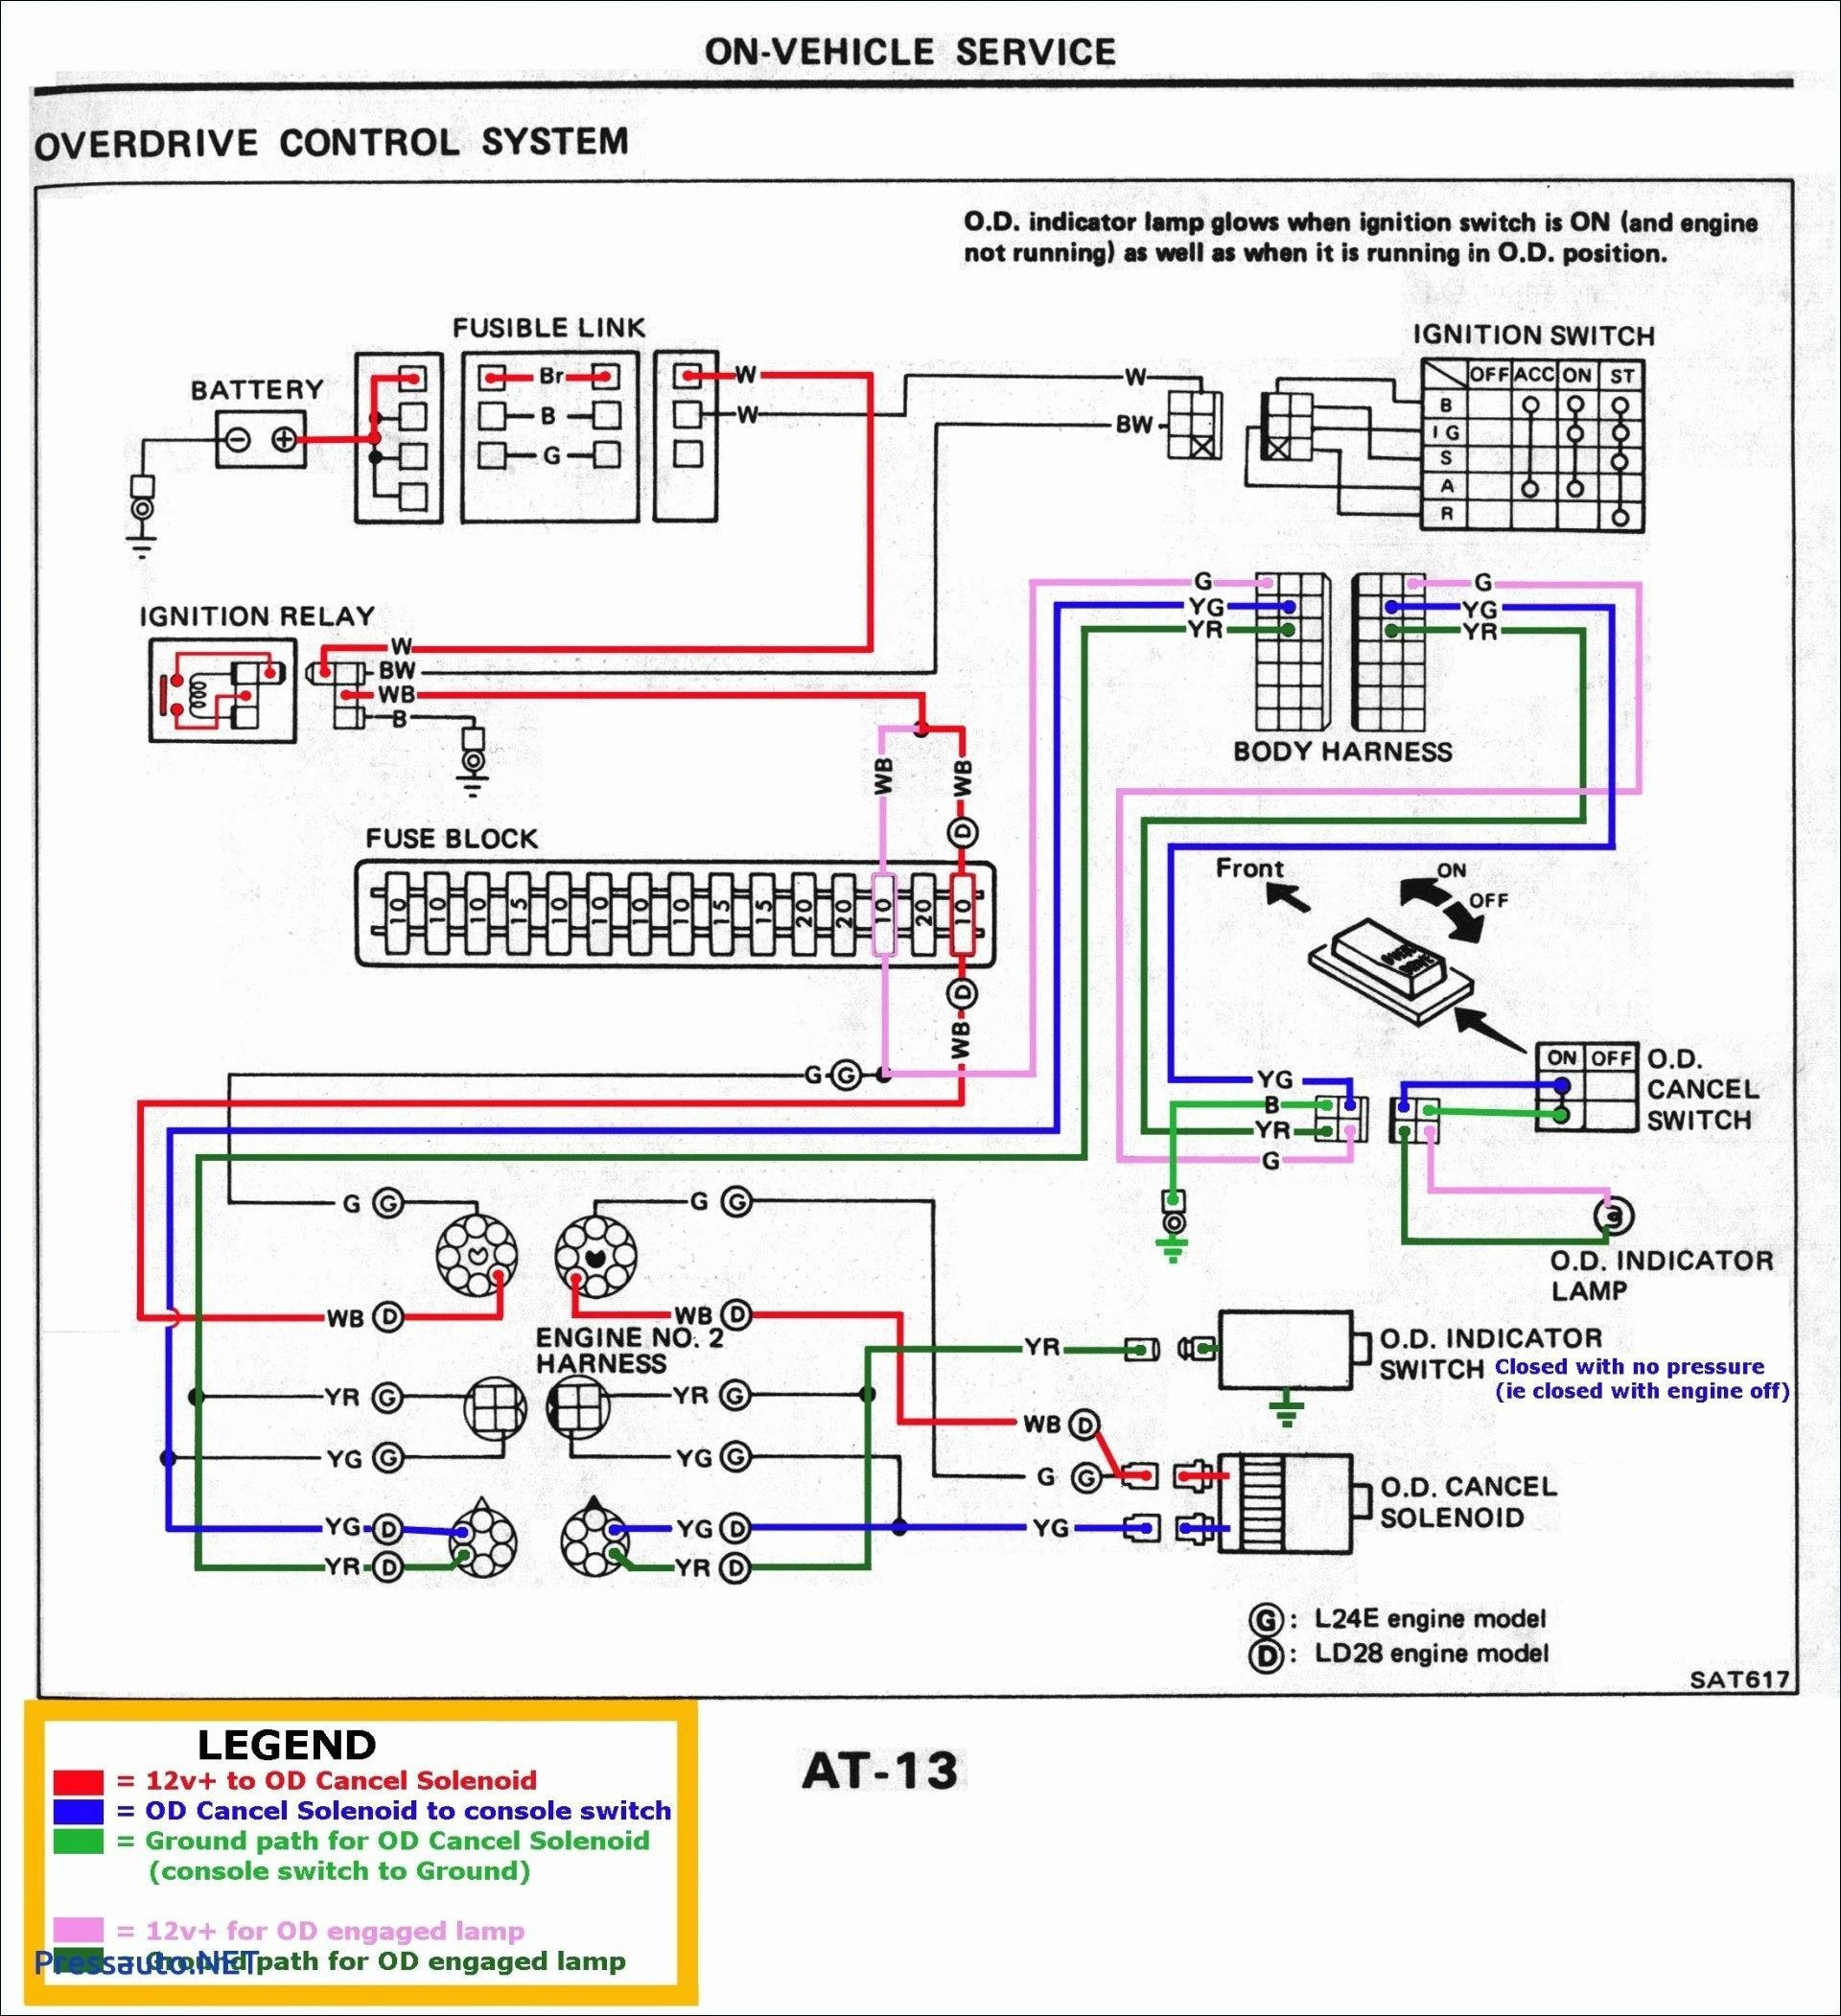 Ford F150 Parts Diagram Chevy Tilt Steering Column Wiring Diagram Queen Int Designs Chevy Of Ford F150 Parts Diagram